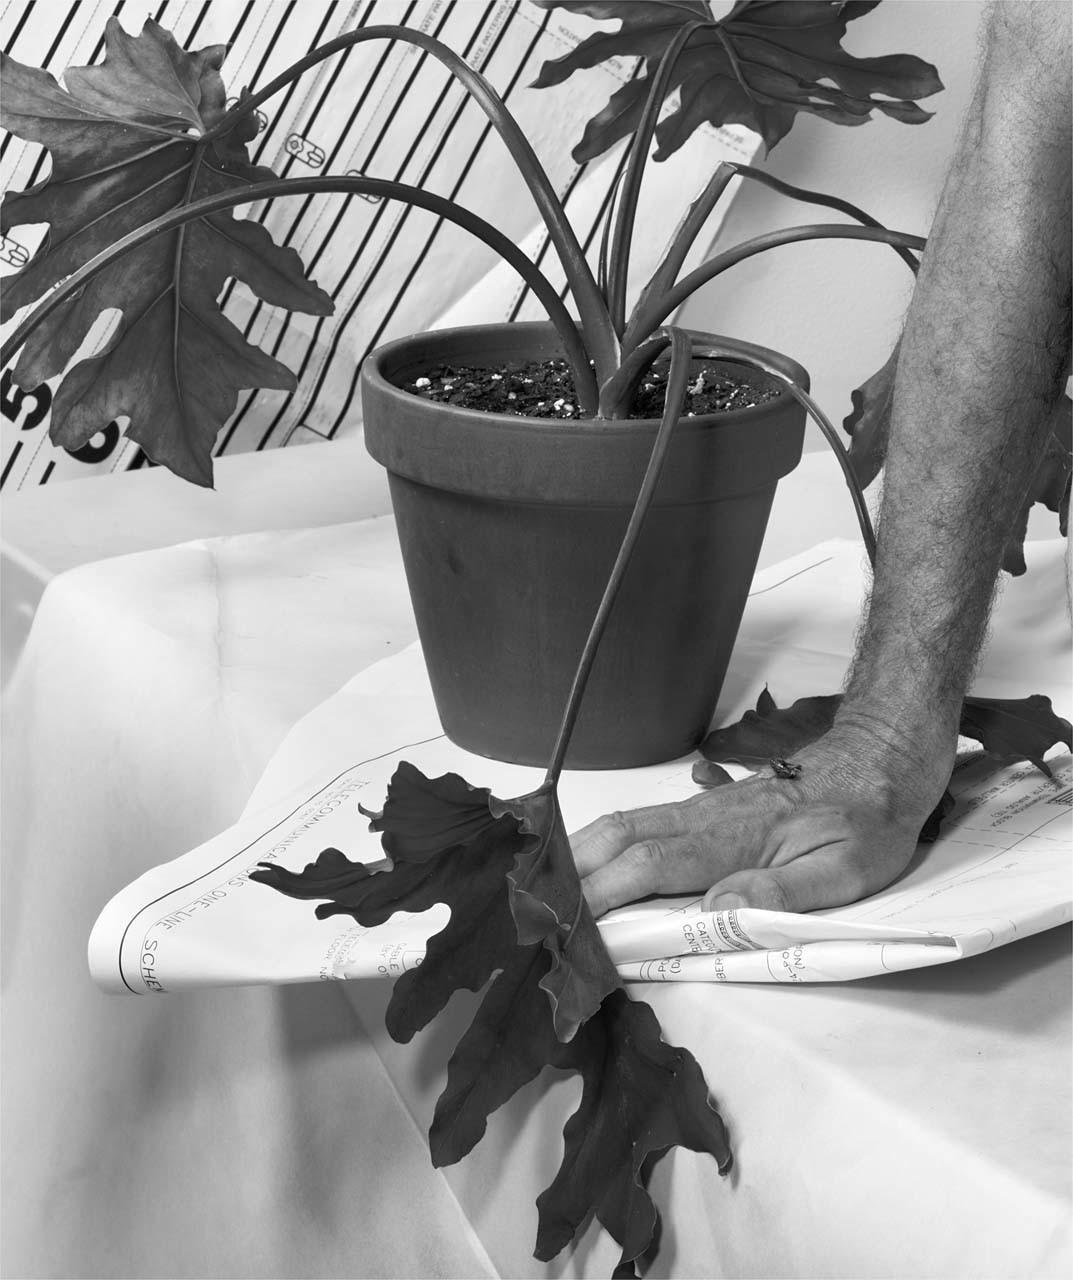 """<div class=""""artwork_caption""""><p>Plant, Hand, Paper, Fly, Table, Lines, Numbers, 2009</p></div>"""